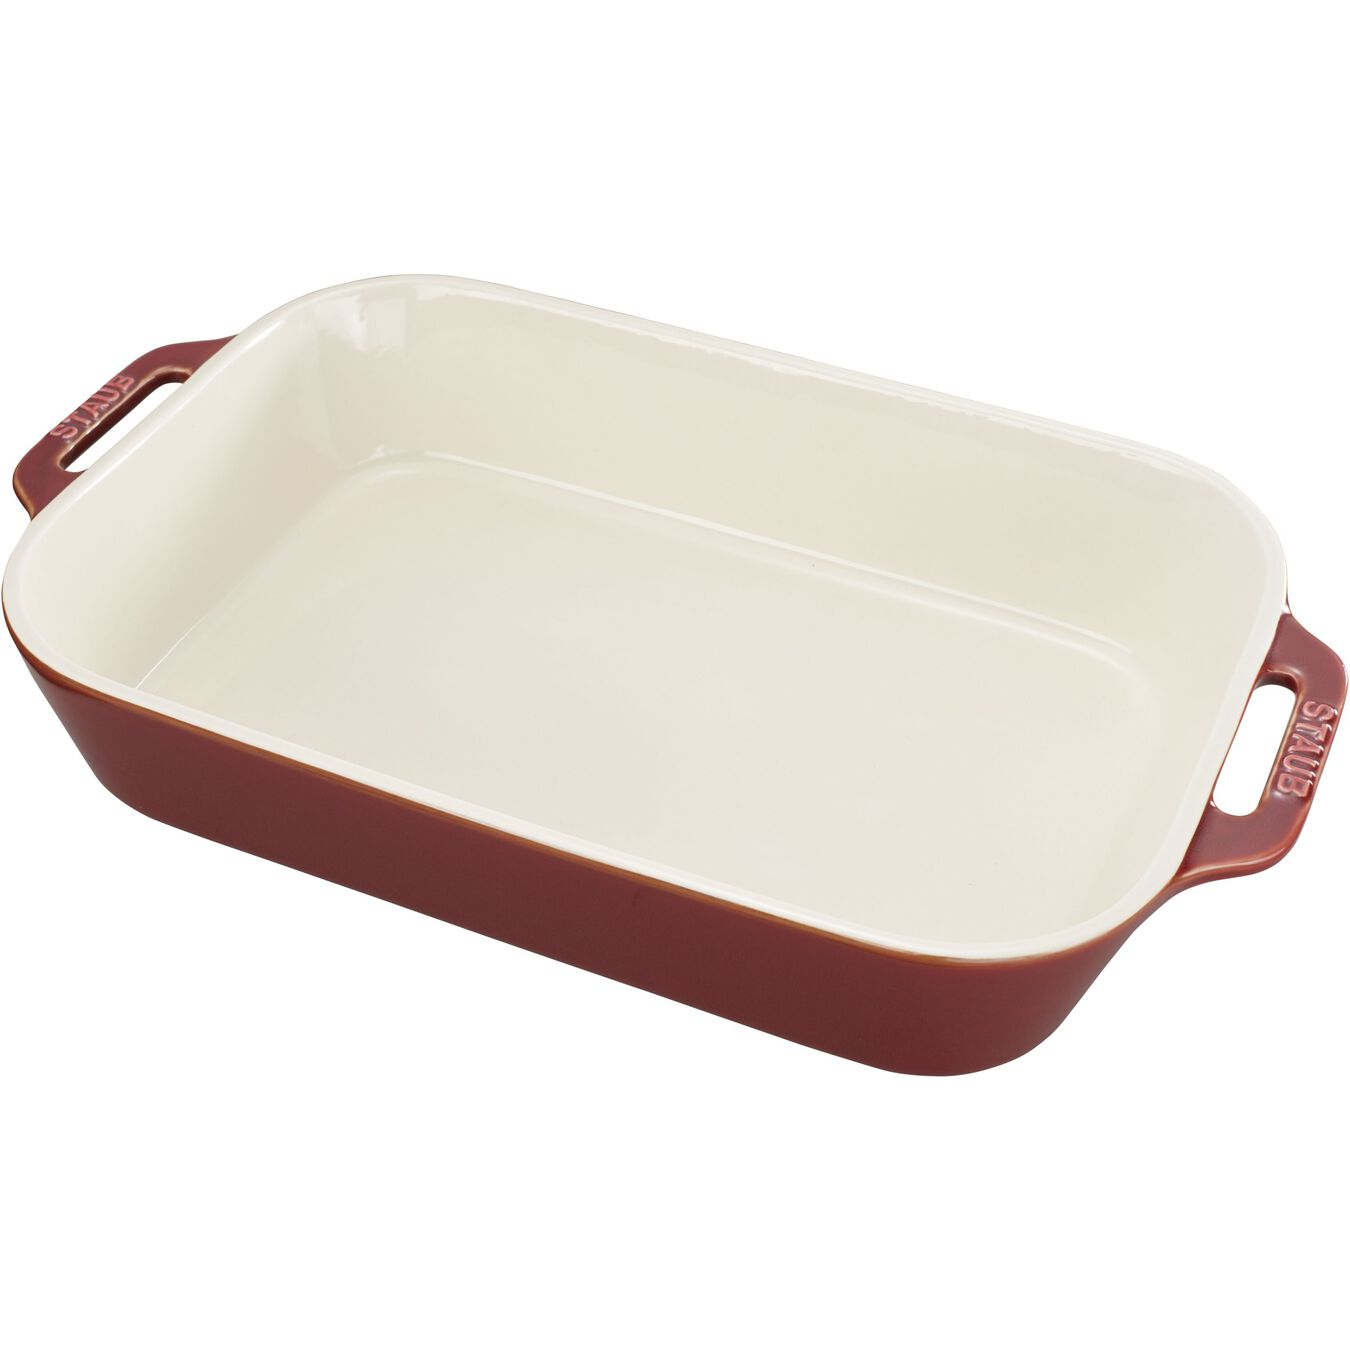 9.5-inch, rectangular, Oven dish, rustic red,,large 1